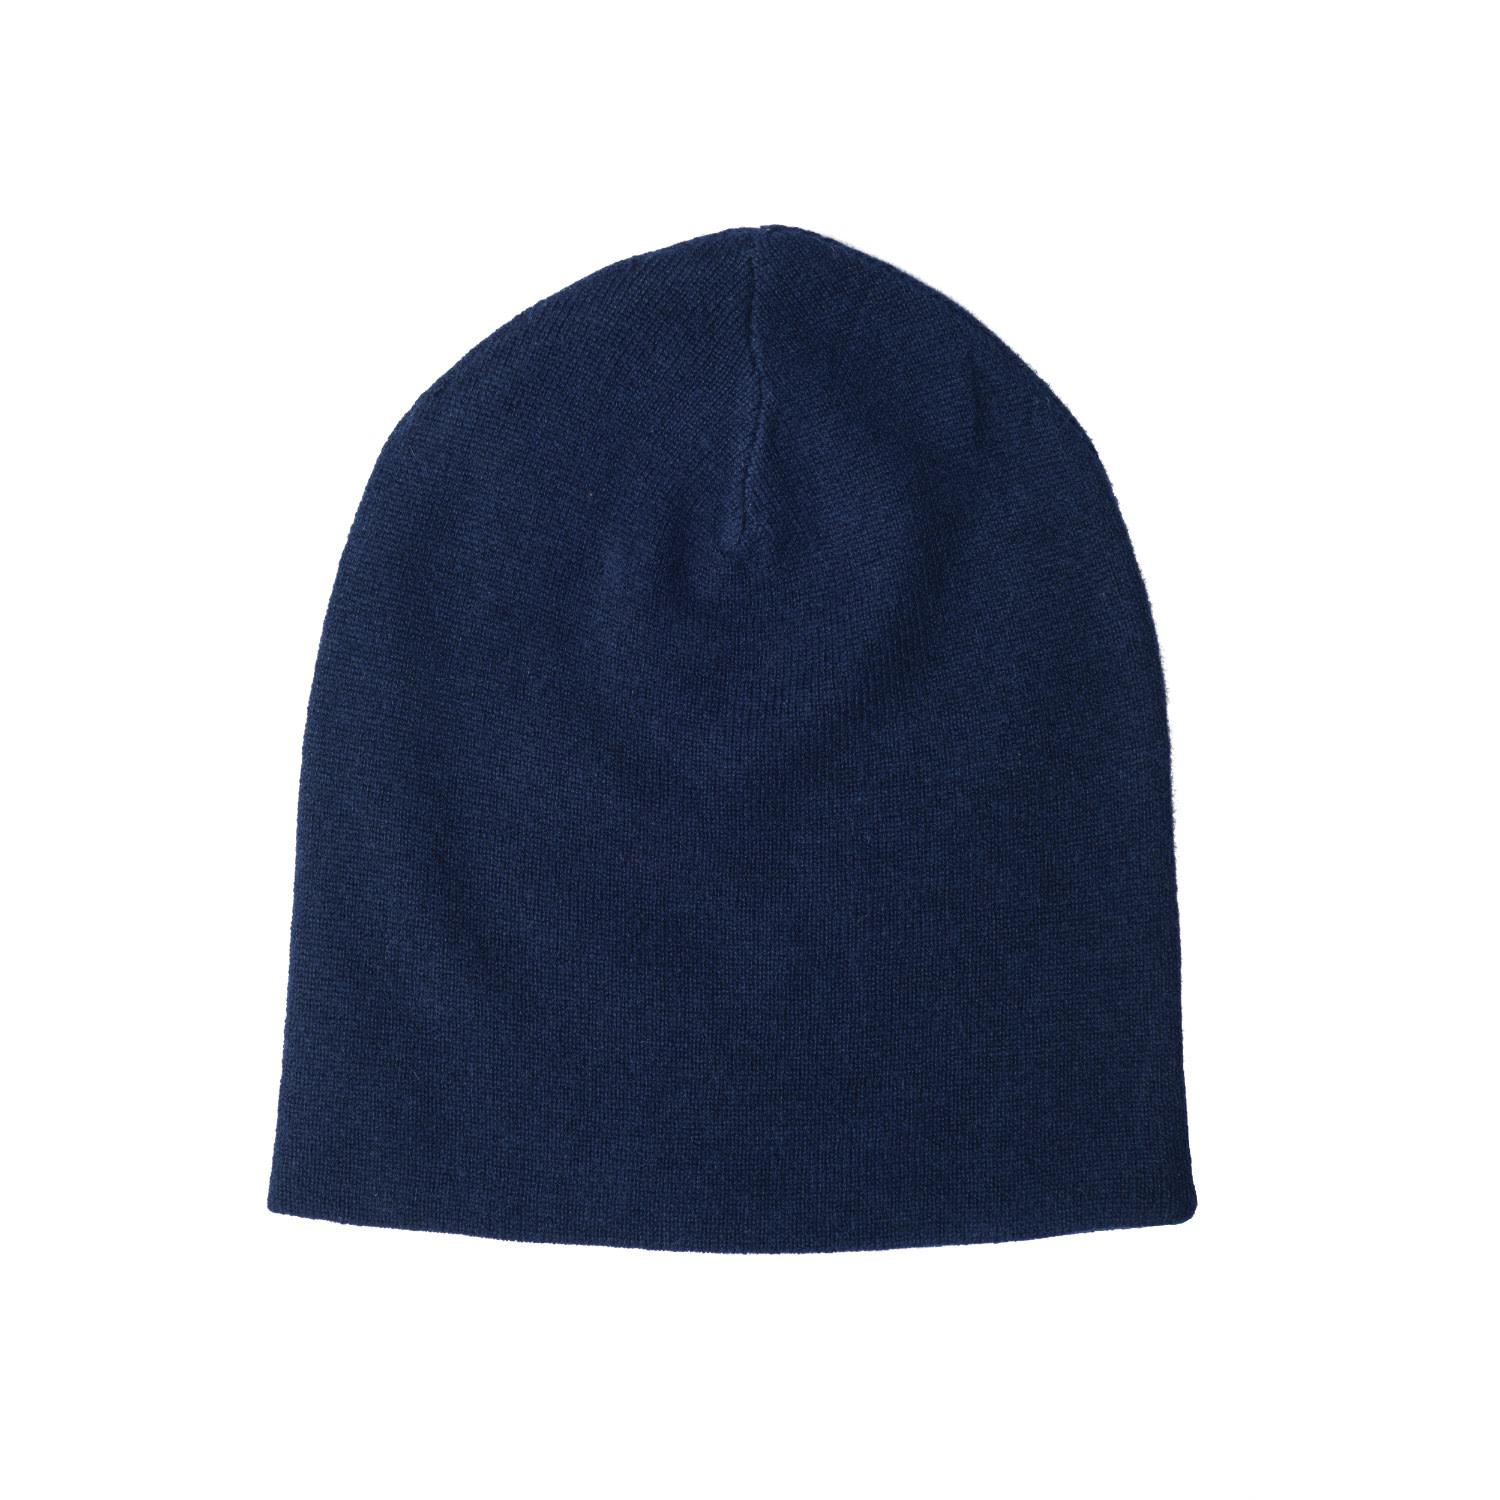 8a31a1a1279 Lyst - Orwell + Austen Cashmere Cashmere Beanie In Navy in Blue